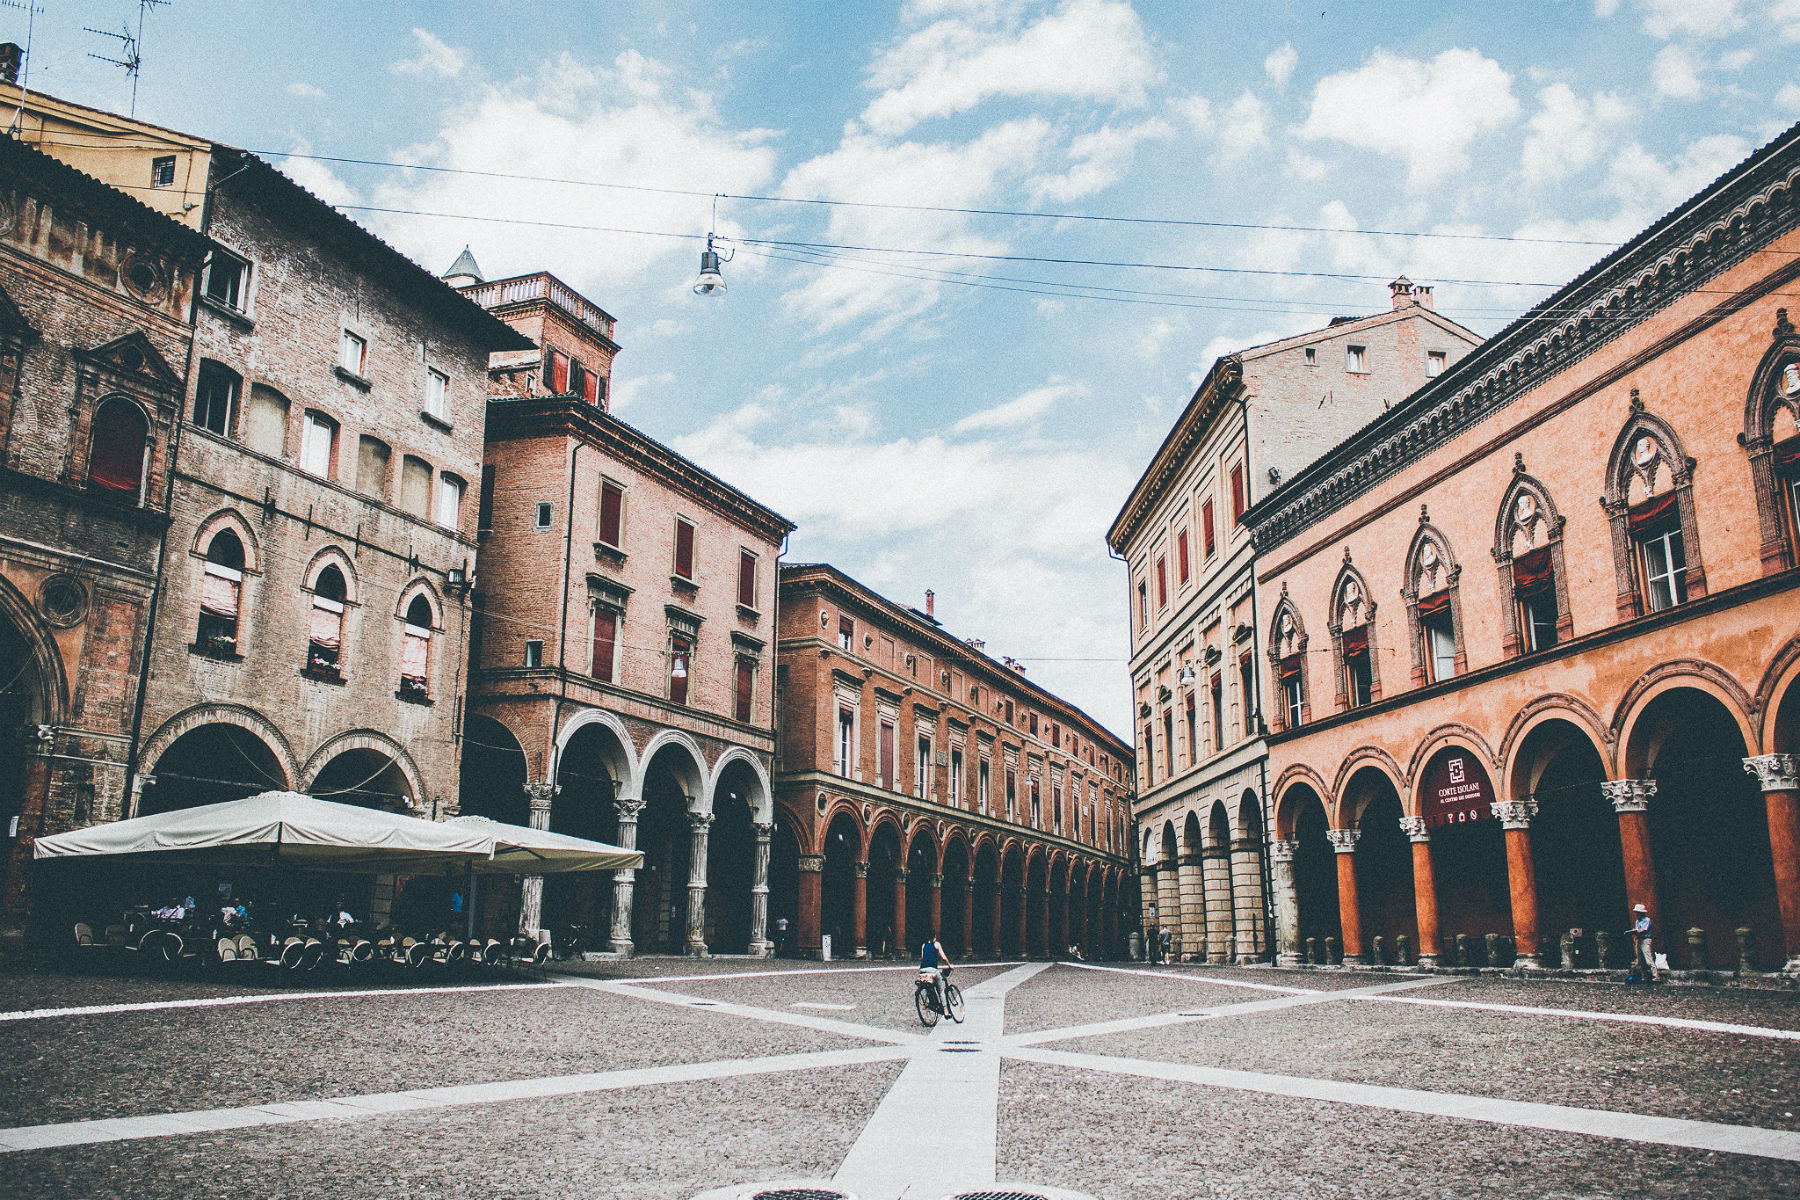 Cucina Ebraica Bologna Spotahome S Guide To Making The Most Out Of 24 Hours In Bologna